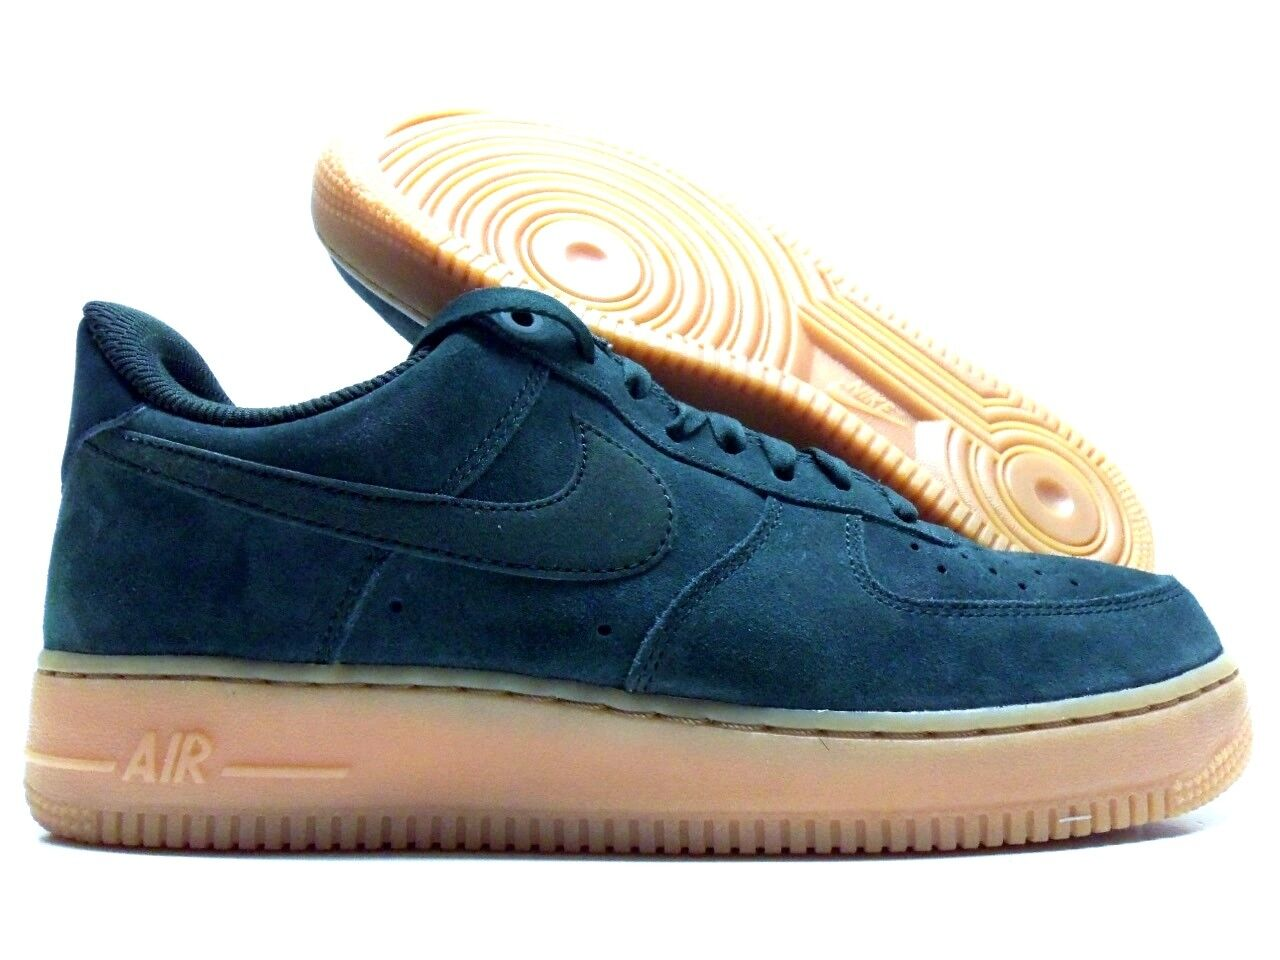 NIKE AIR FORCE 1 '07 SE OUTDOOR GREEN/OUTDOOR GREEN SIZE WOMEN'S 10 [AA0287-300]